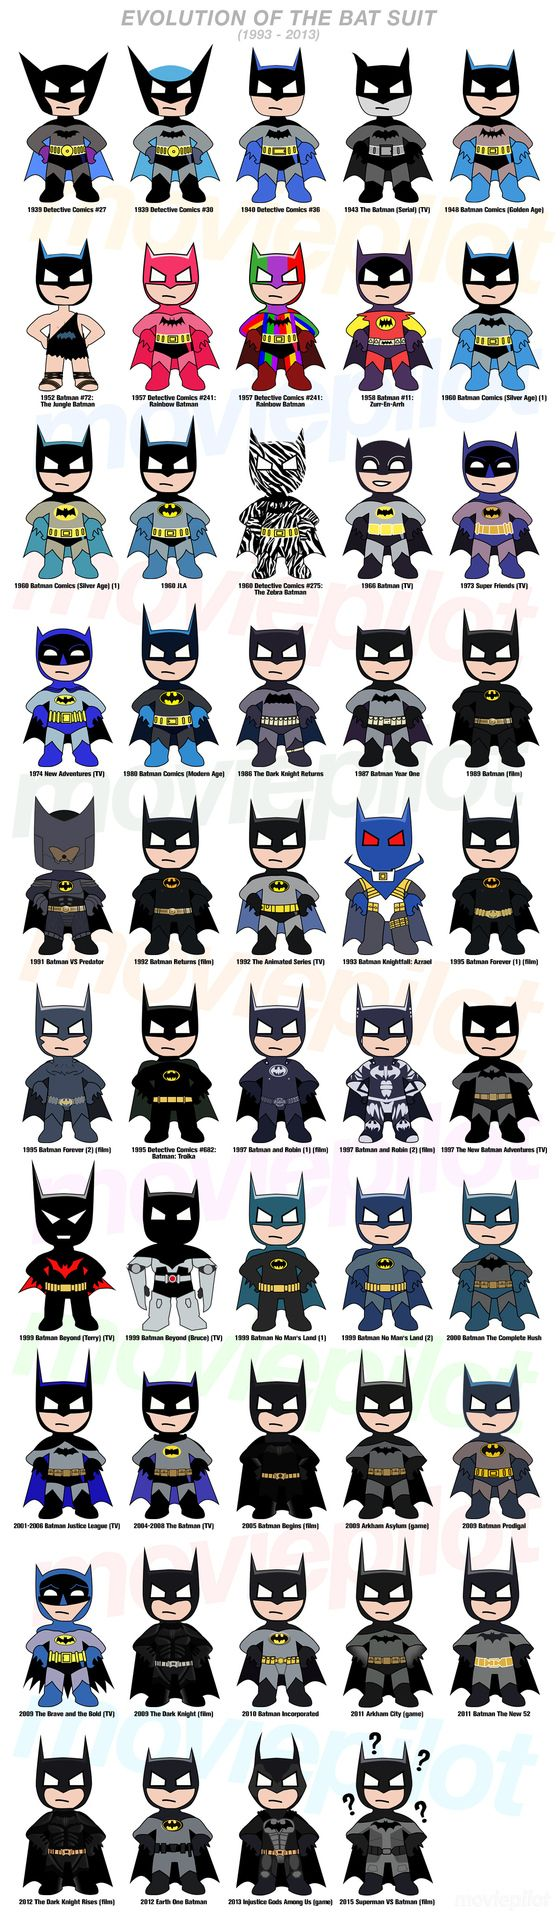 INFOGRAPHIC: The Evolution of the Batsuit   Moviepilot: New Stories for Upcoming Movies